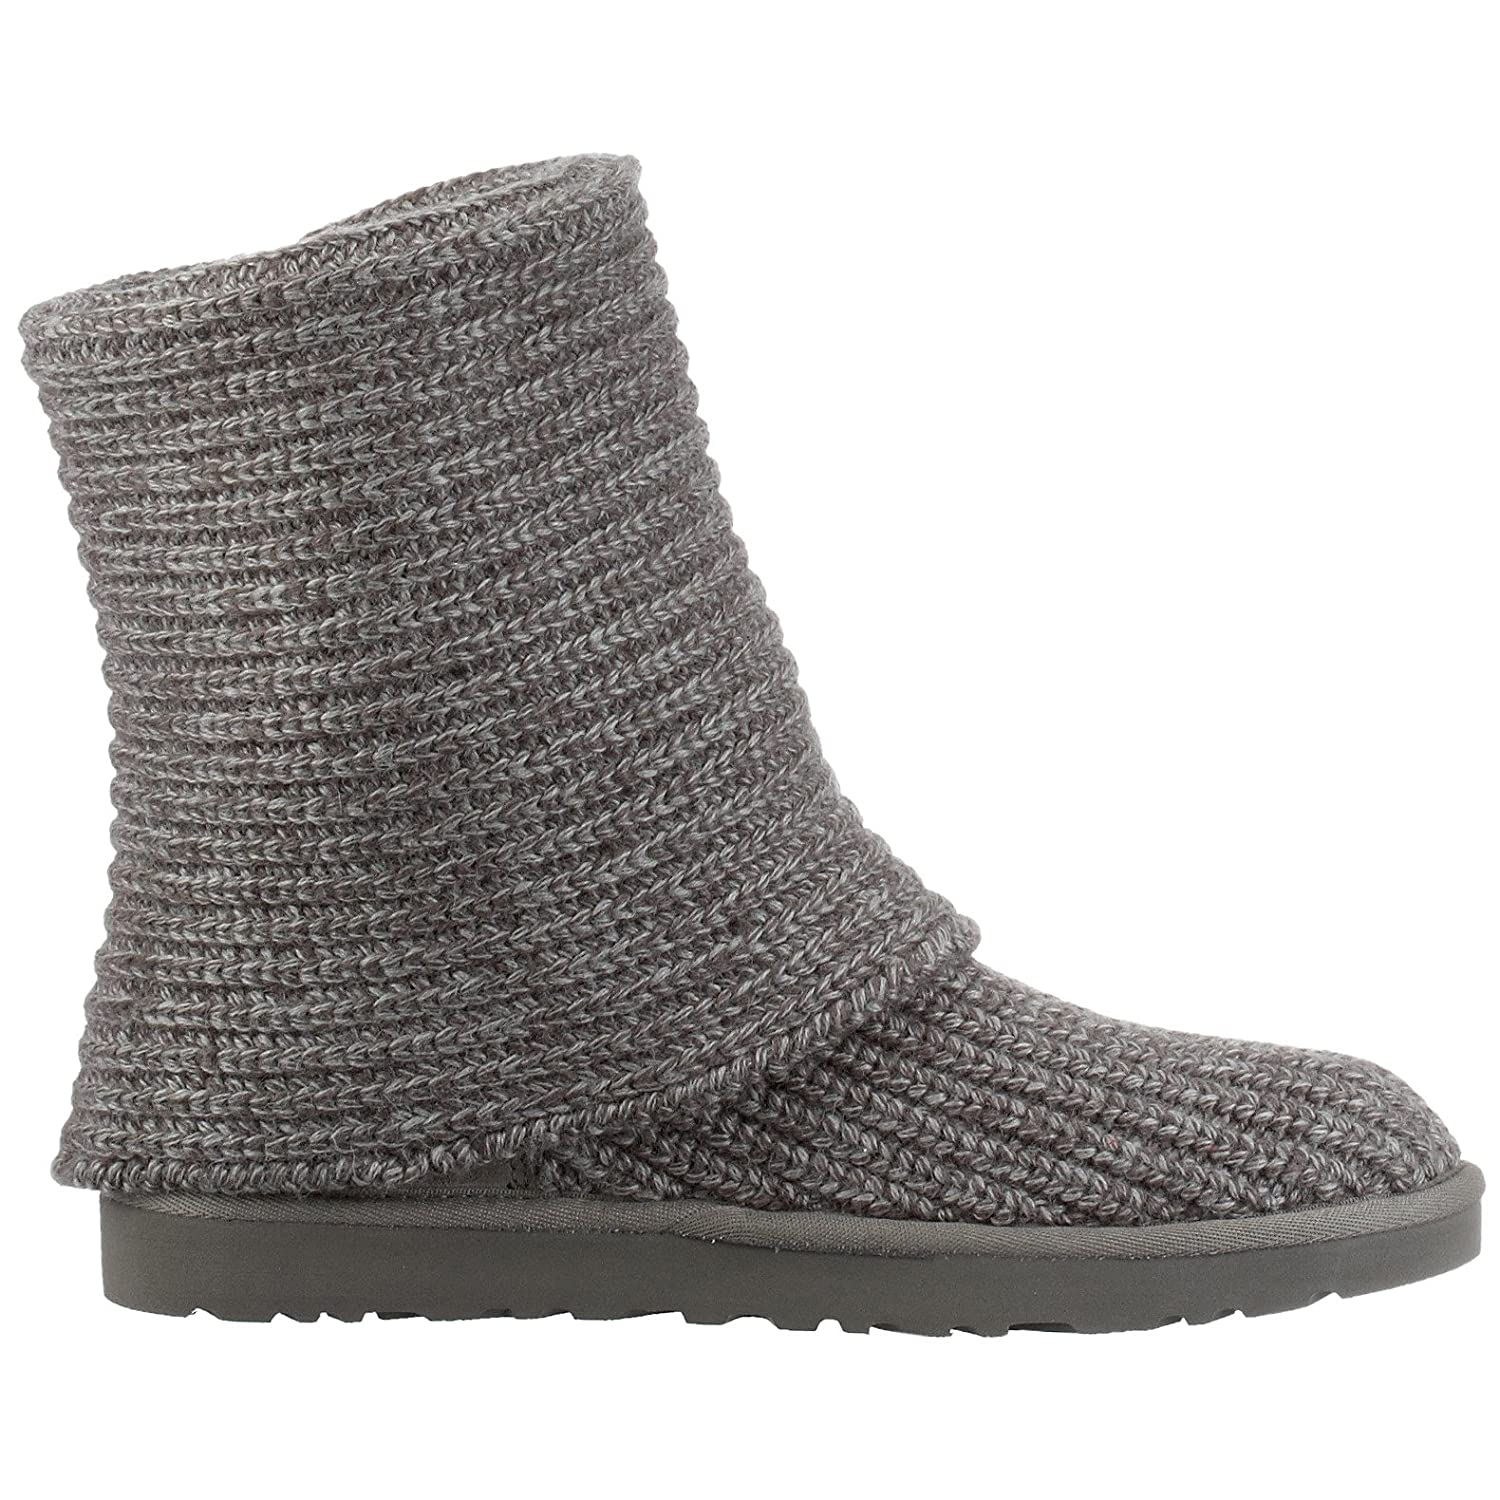 UGG has them all, with options for men, women, and children, too.